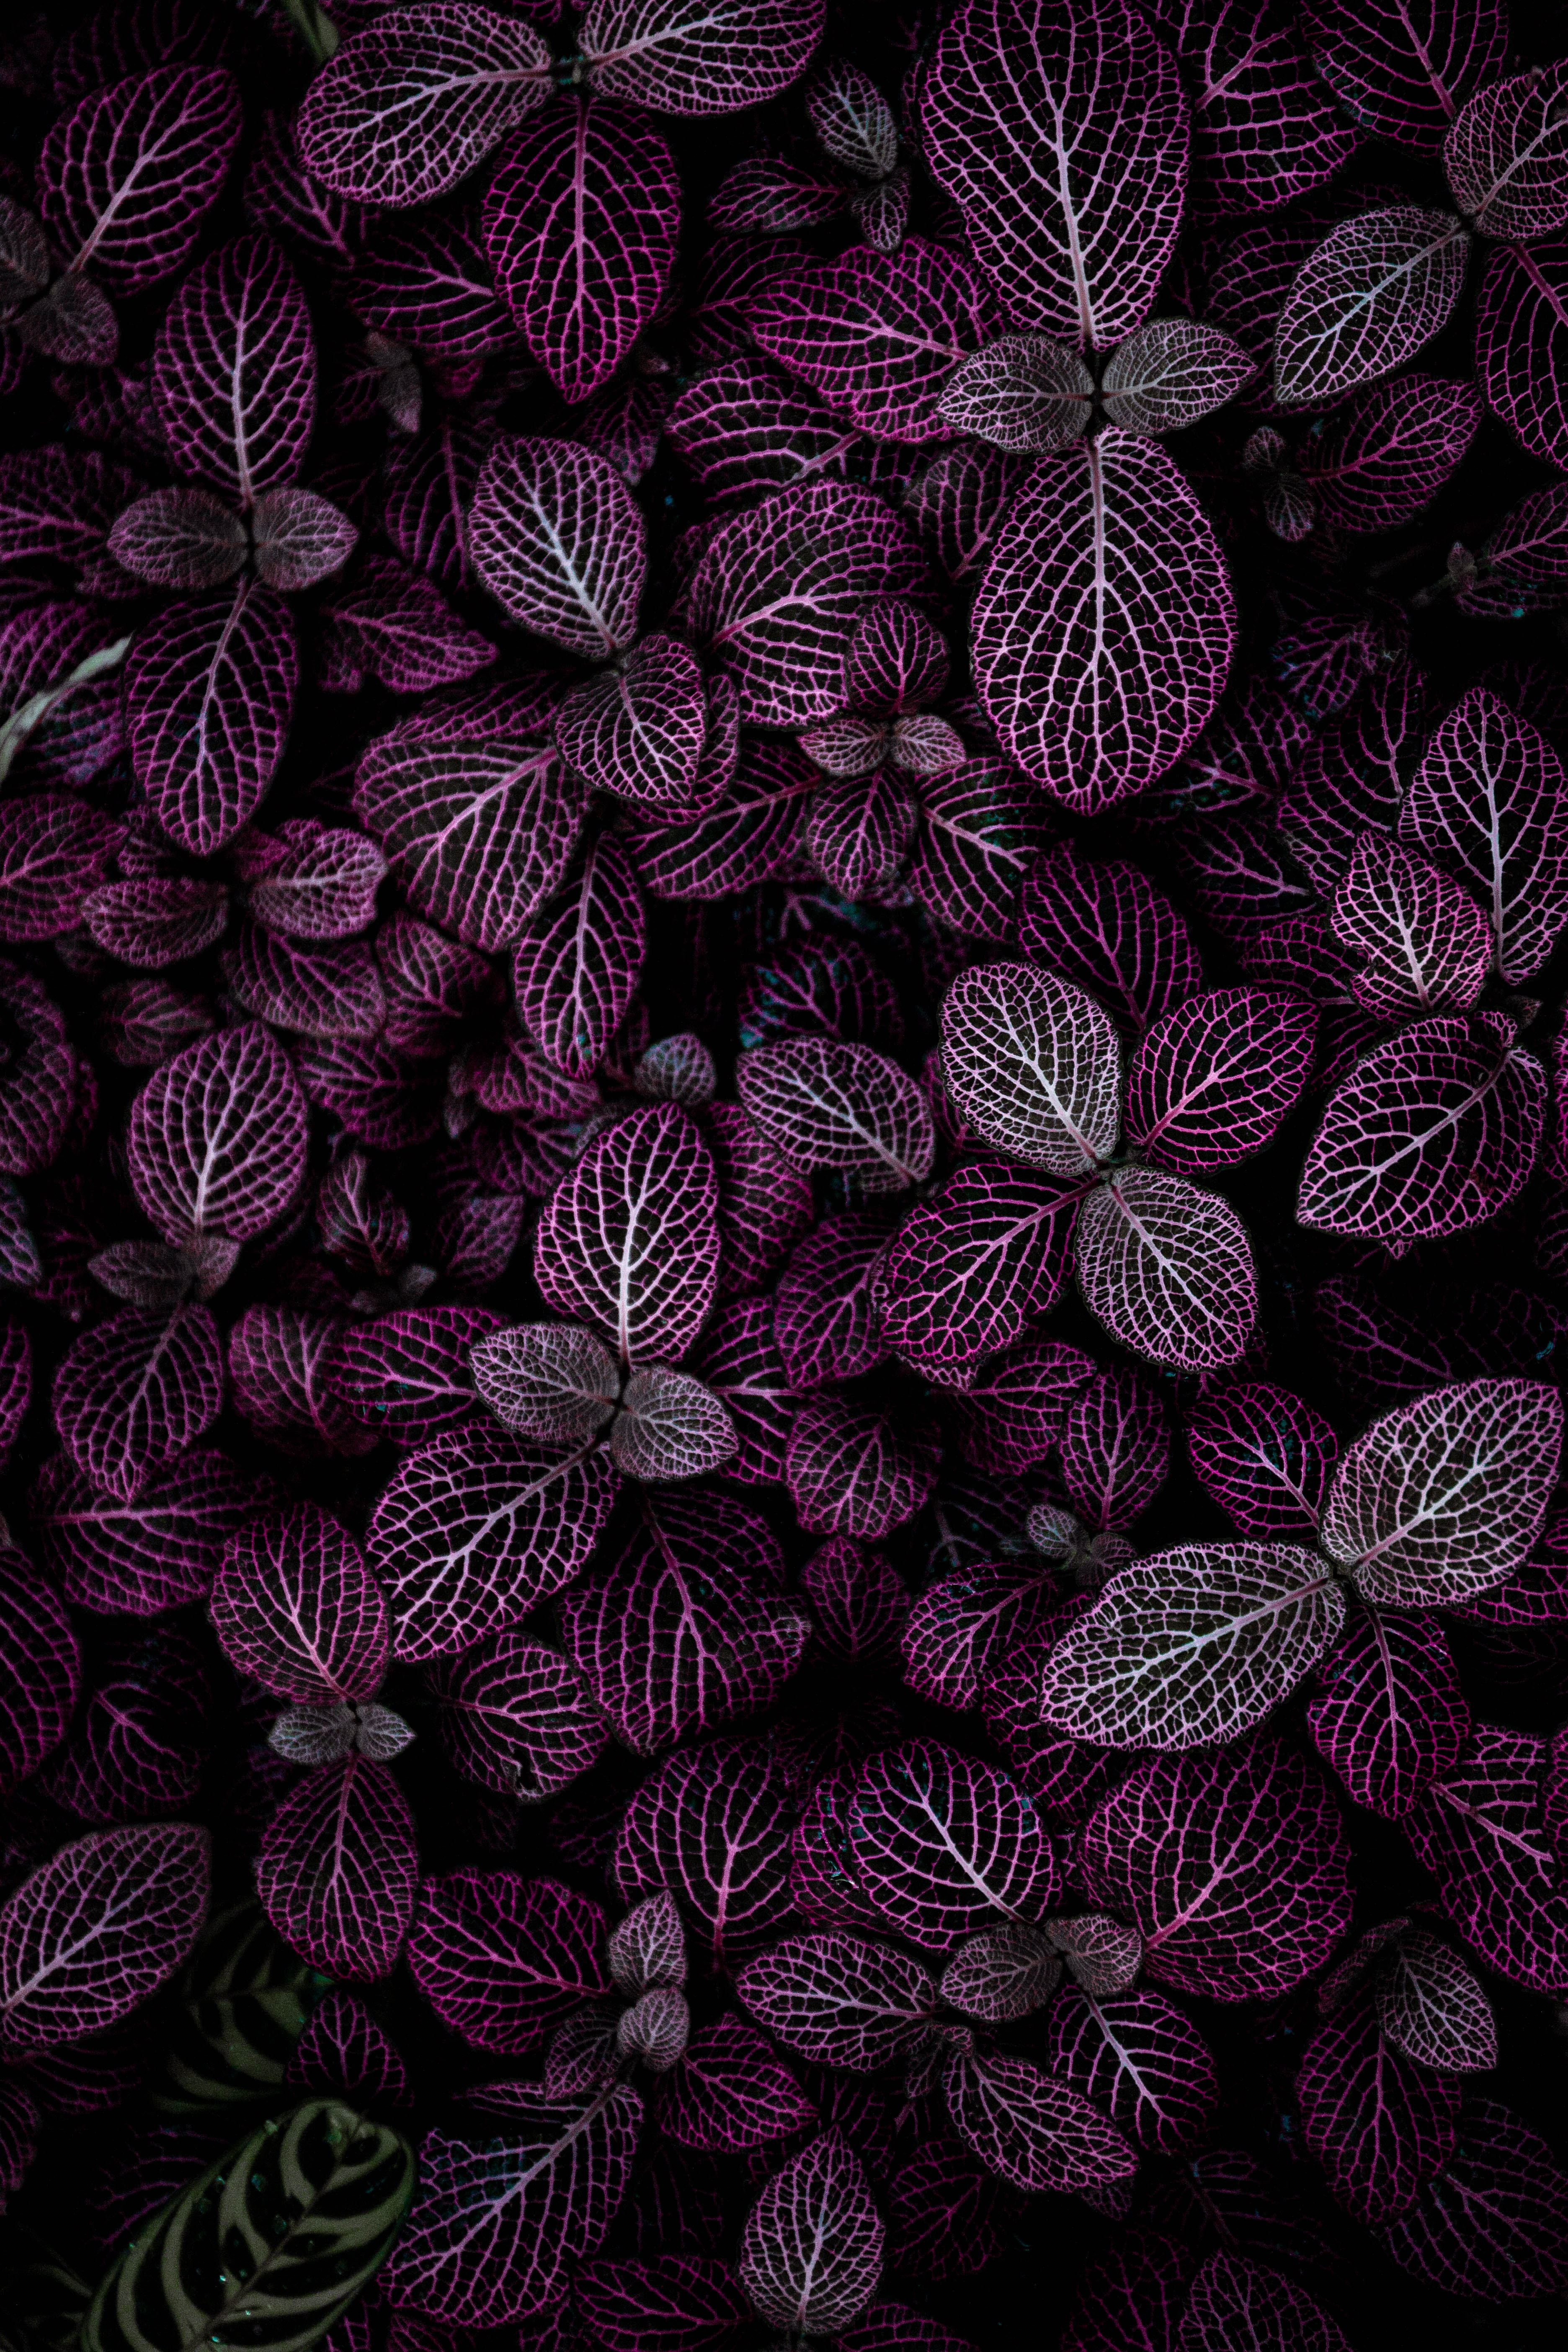 purple leafed plant field